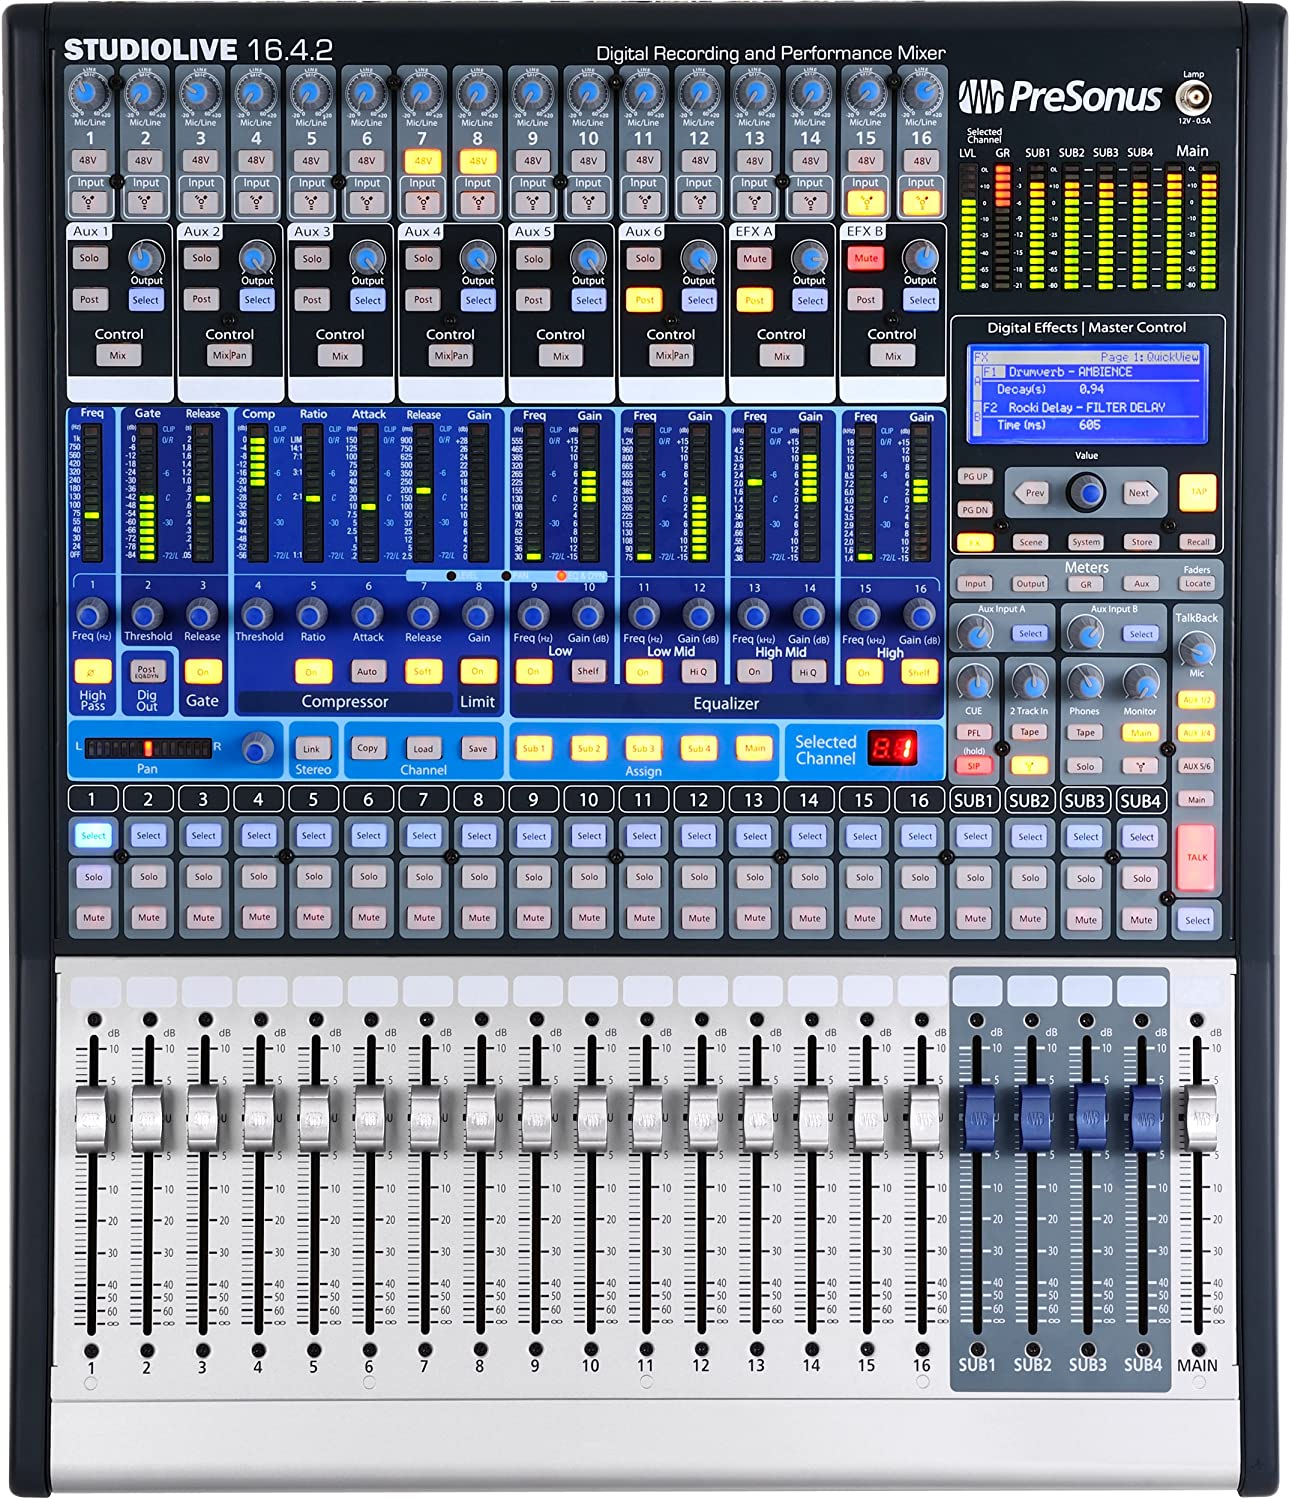 Presonus Studiolive 1642 16 Channel Performance And Audio Circuits July 2009 Amplifier Circuit Equalizer Mixer Recording Digital Musical Instruments